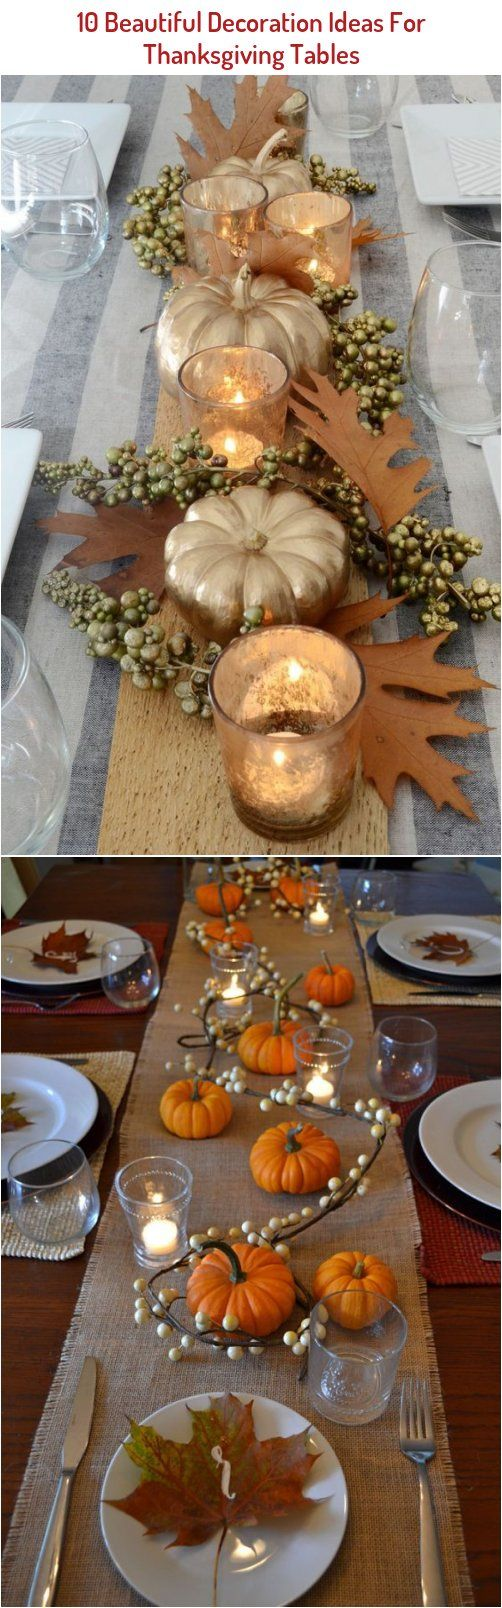 10 Beautiful Decoration Ideas For Thanksgiving Tables The Unlikely Hostess In 2020 Holiday Decorations Fall Beautiful Decor Thanksgiving Table